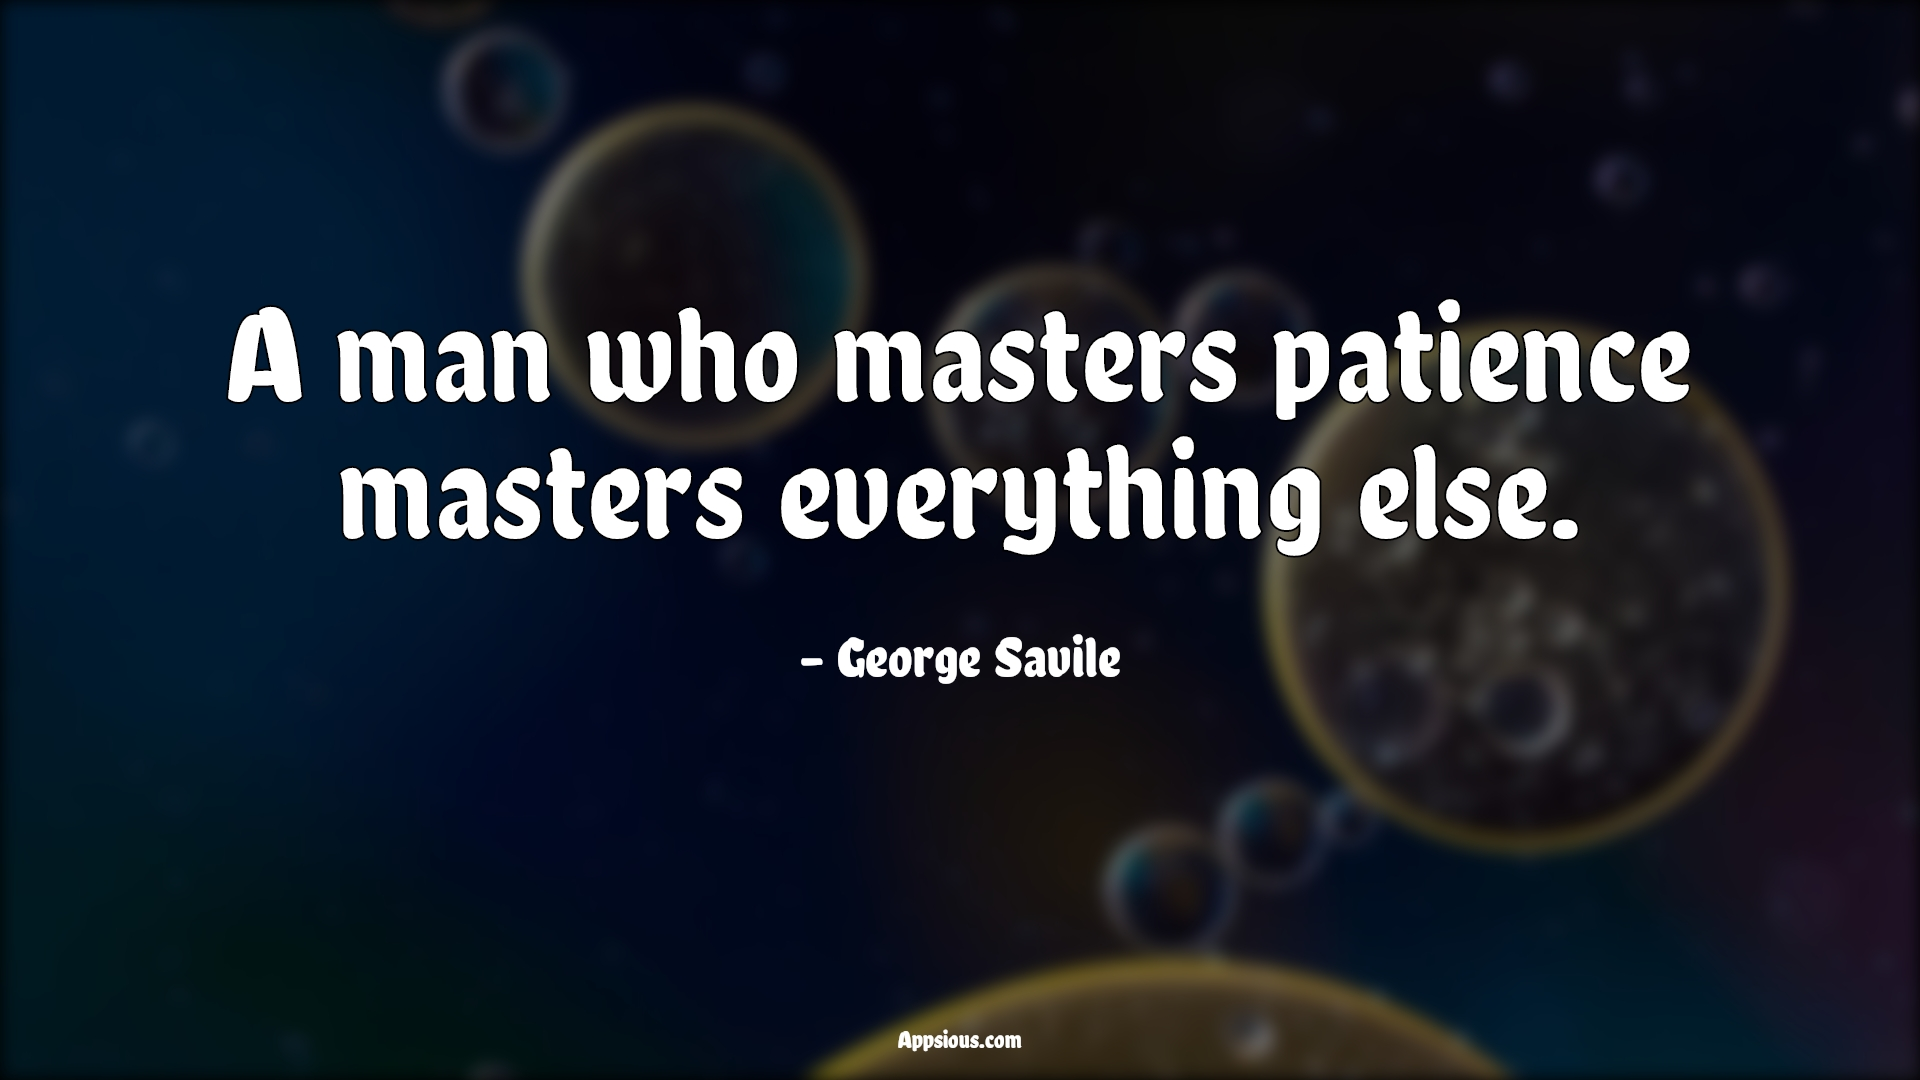 A man who masters patience masters everything else.